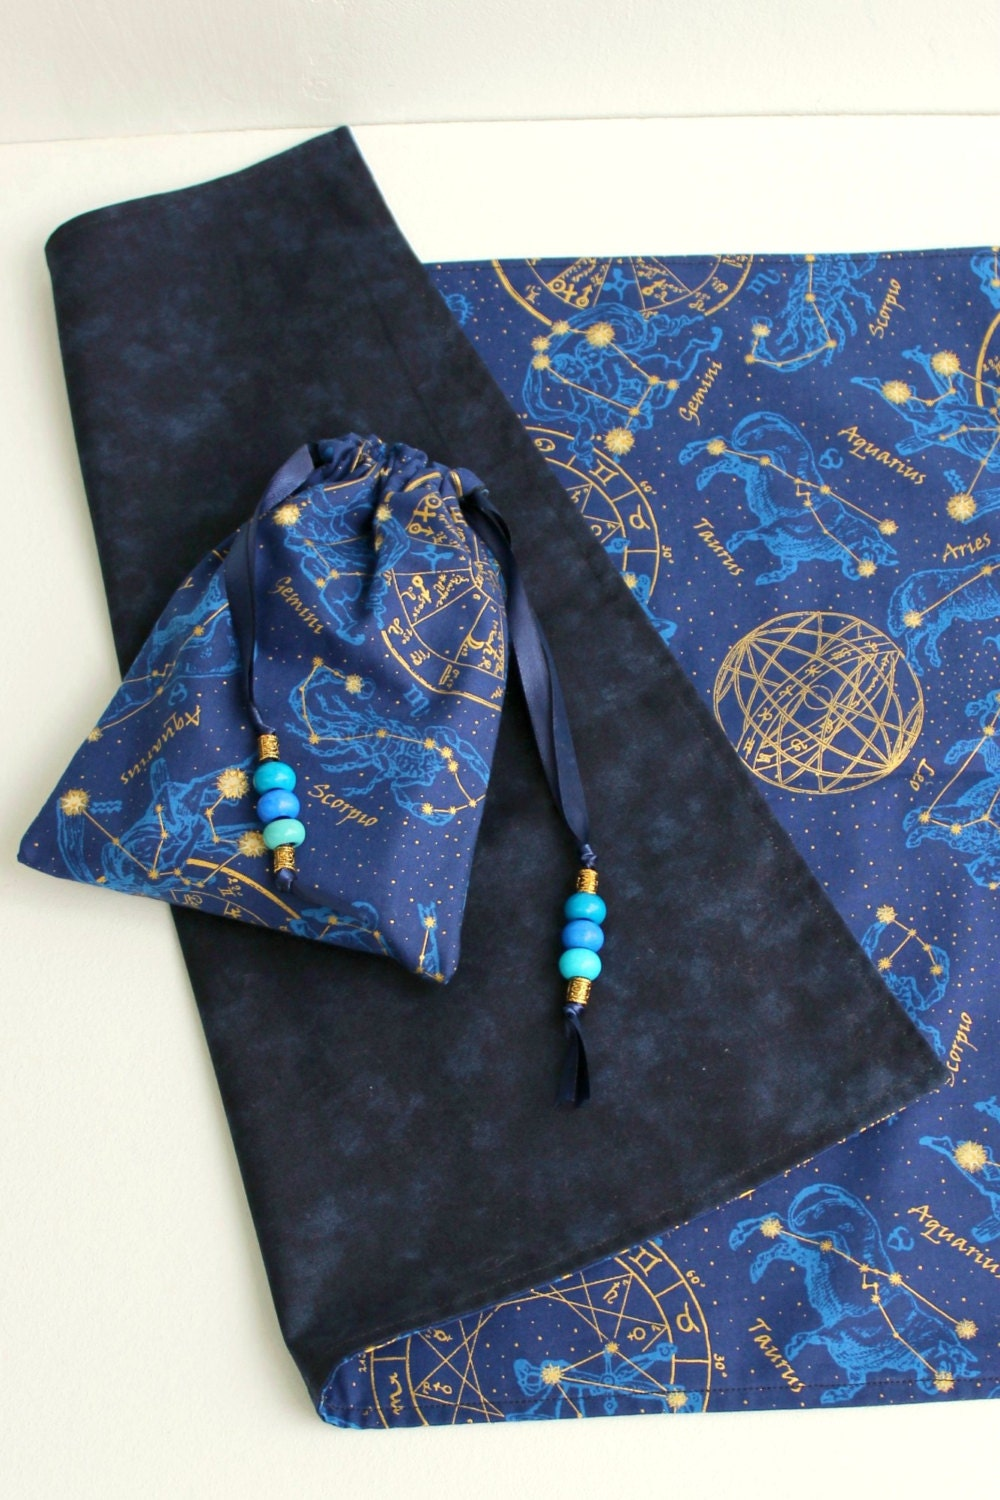 Tarot Bags Tarot Cards Cloths More: Tarot Bag Blue & Gold Zodiac Fabric Fully Lined Cloth